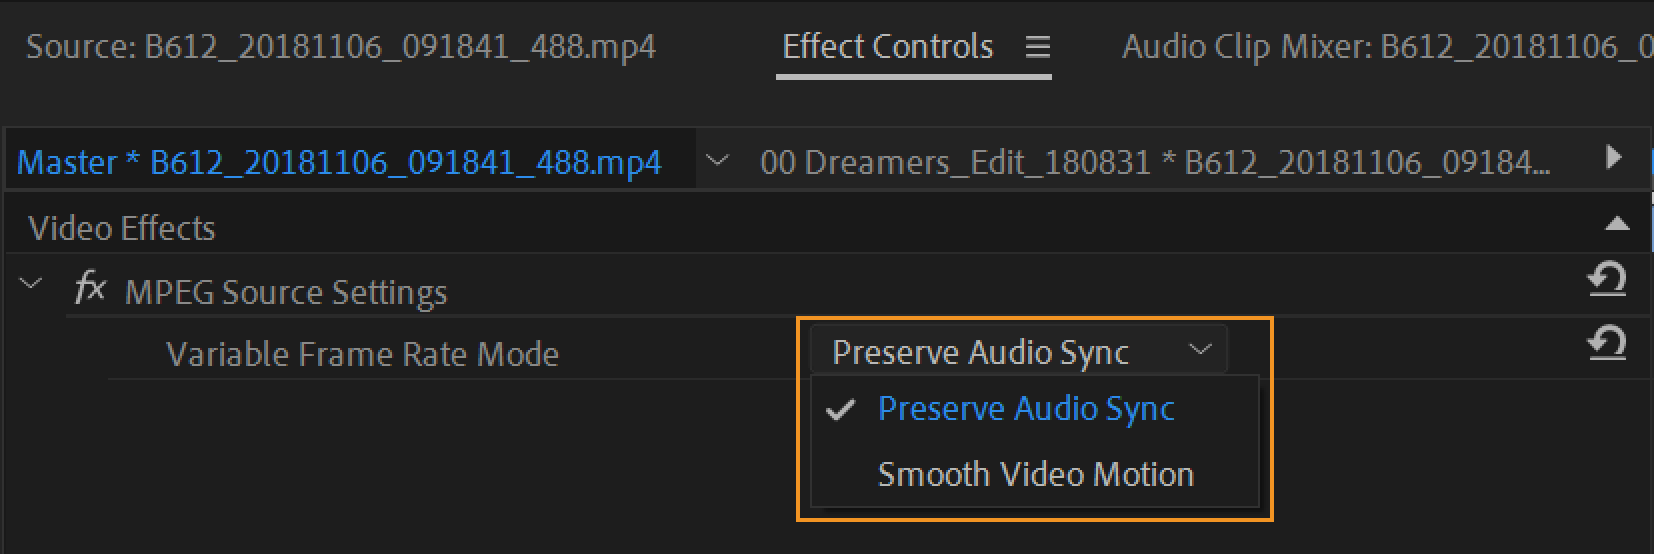 Audio-video sync options for VFR footage